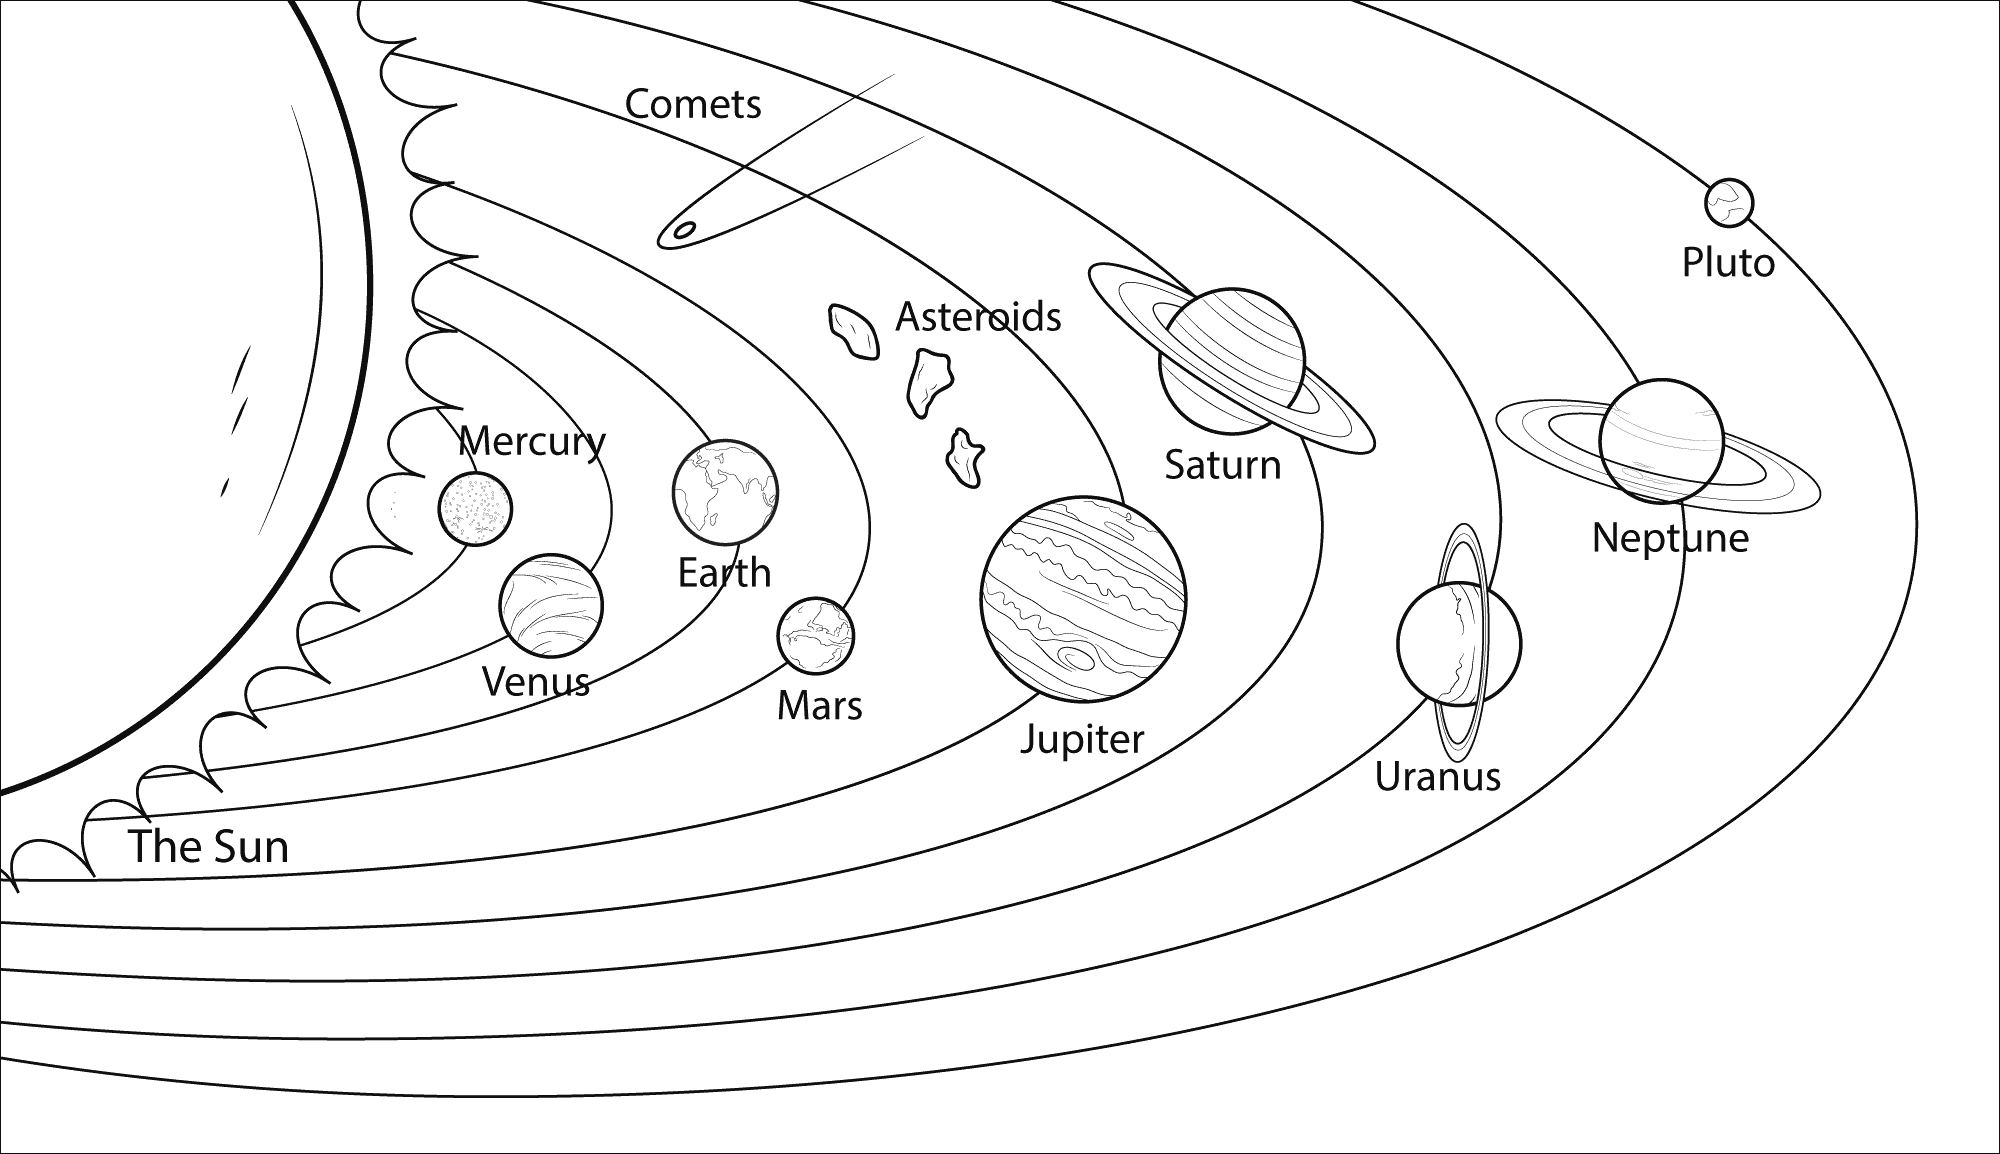 Free Printable Solar System Coloring Pages For Kids In 2020 Solar System Coloring Pages Solar System Model Planet Coloring Pages